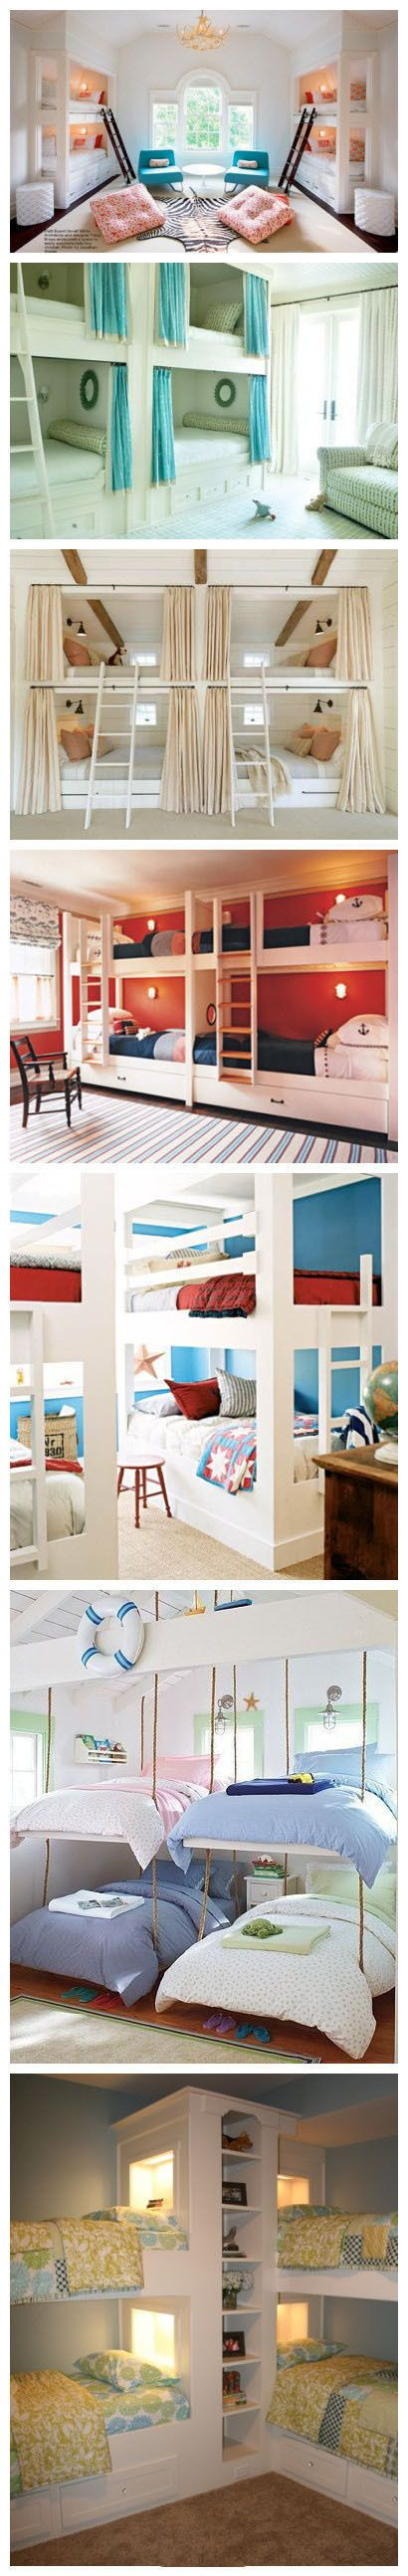 awesome bunk ideas